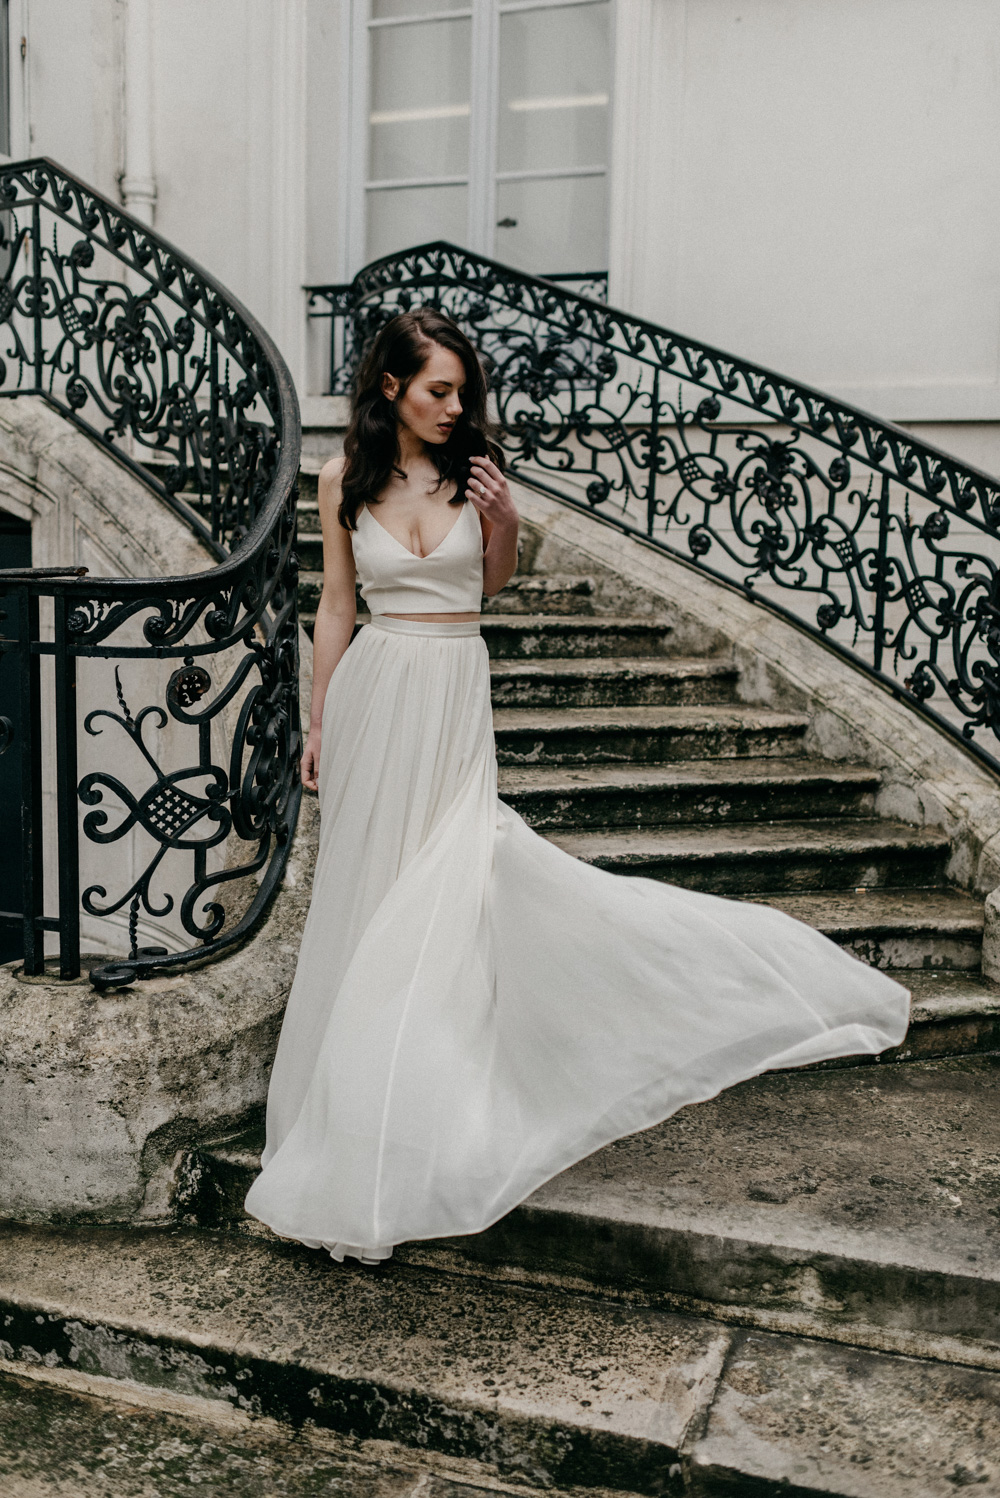 paris-bridal-editorial-lotts-inspire-styling-2.jpg